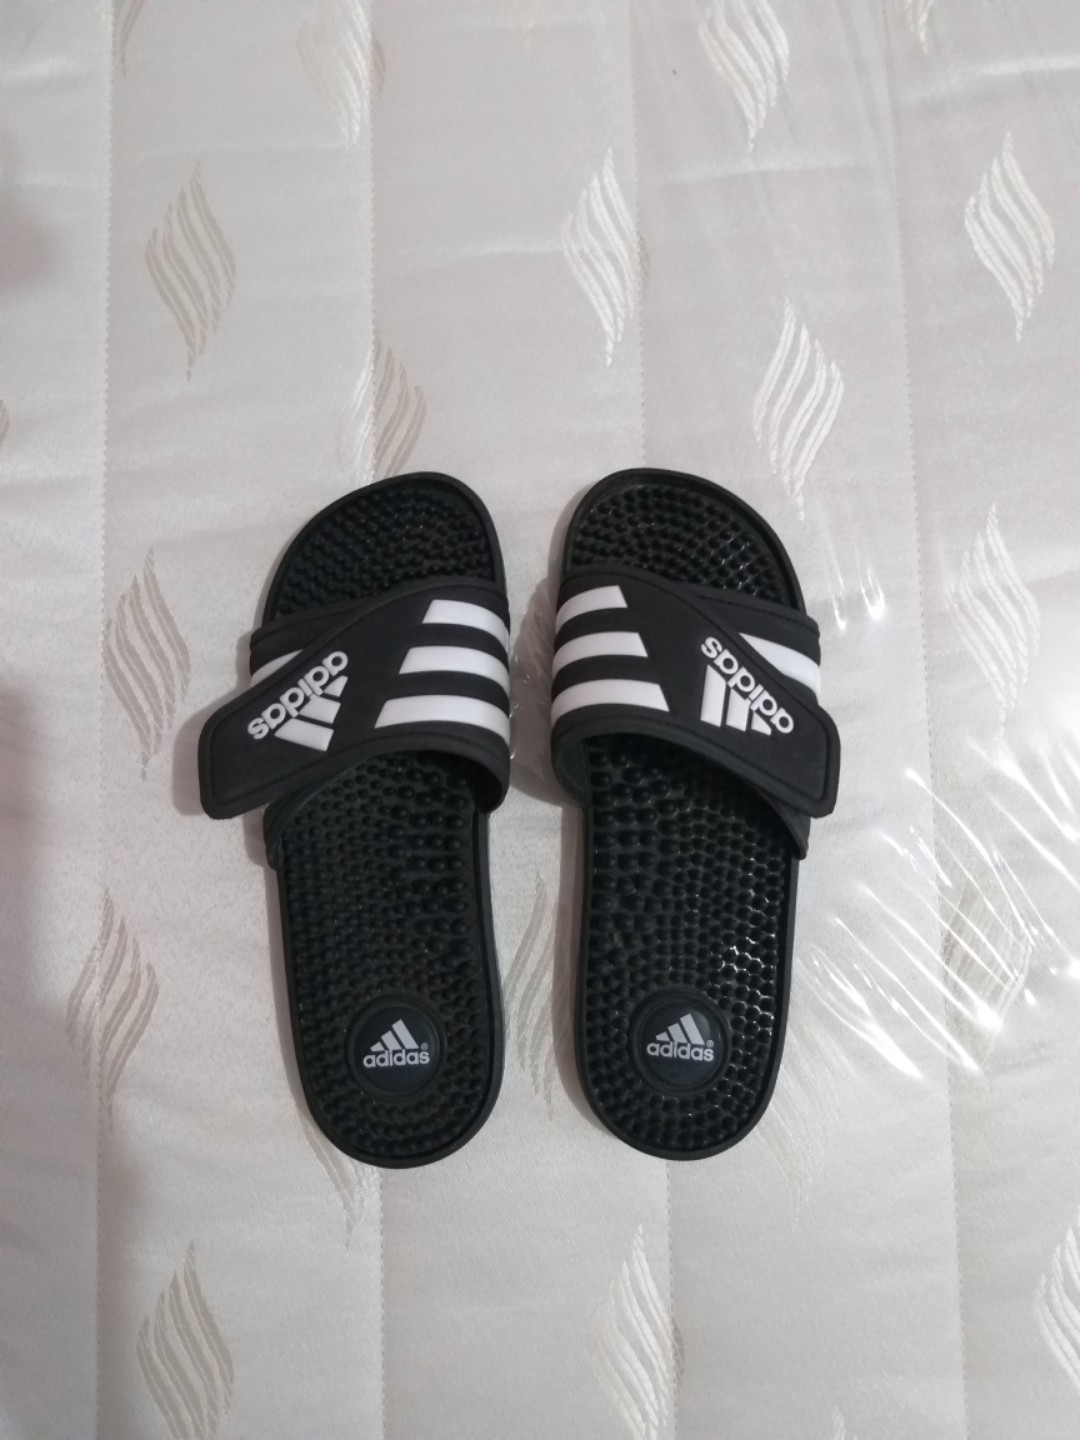 eaaad835a Original Adidas Three Stripe Black Slides Size 5